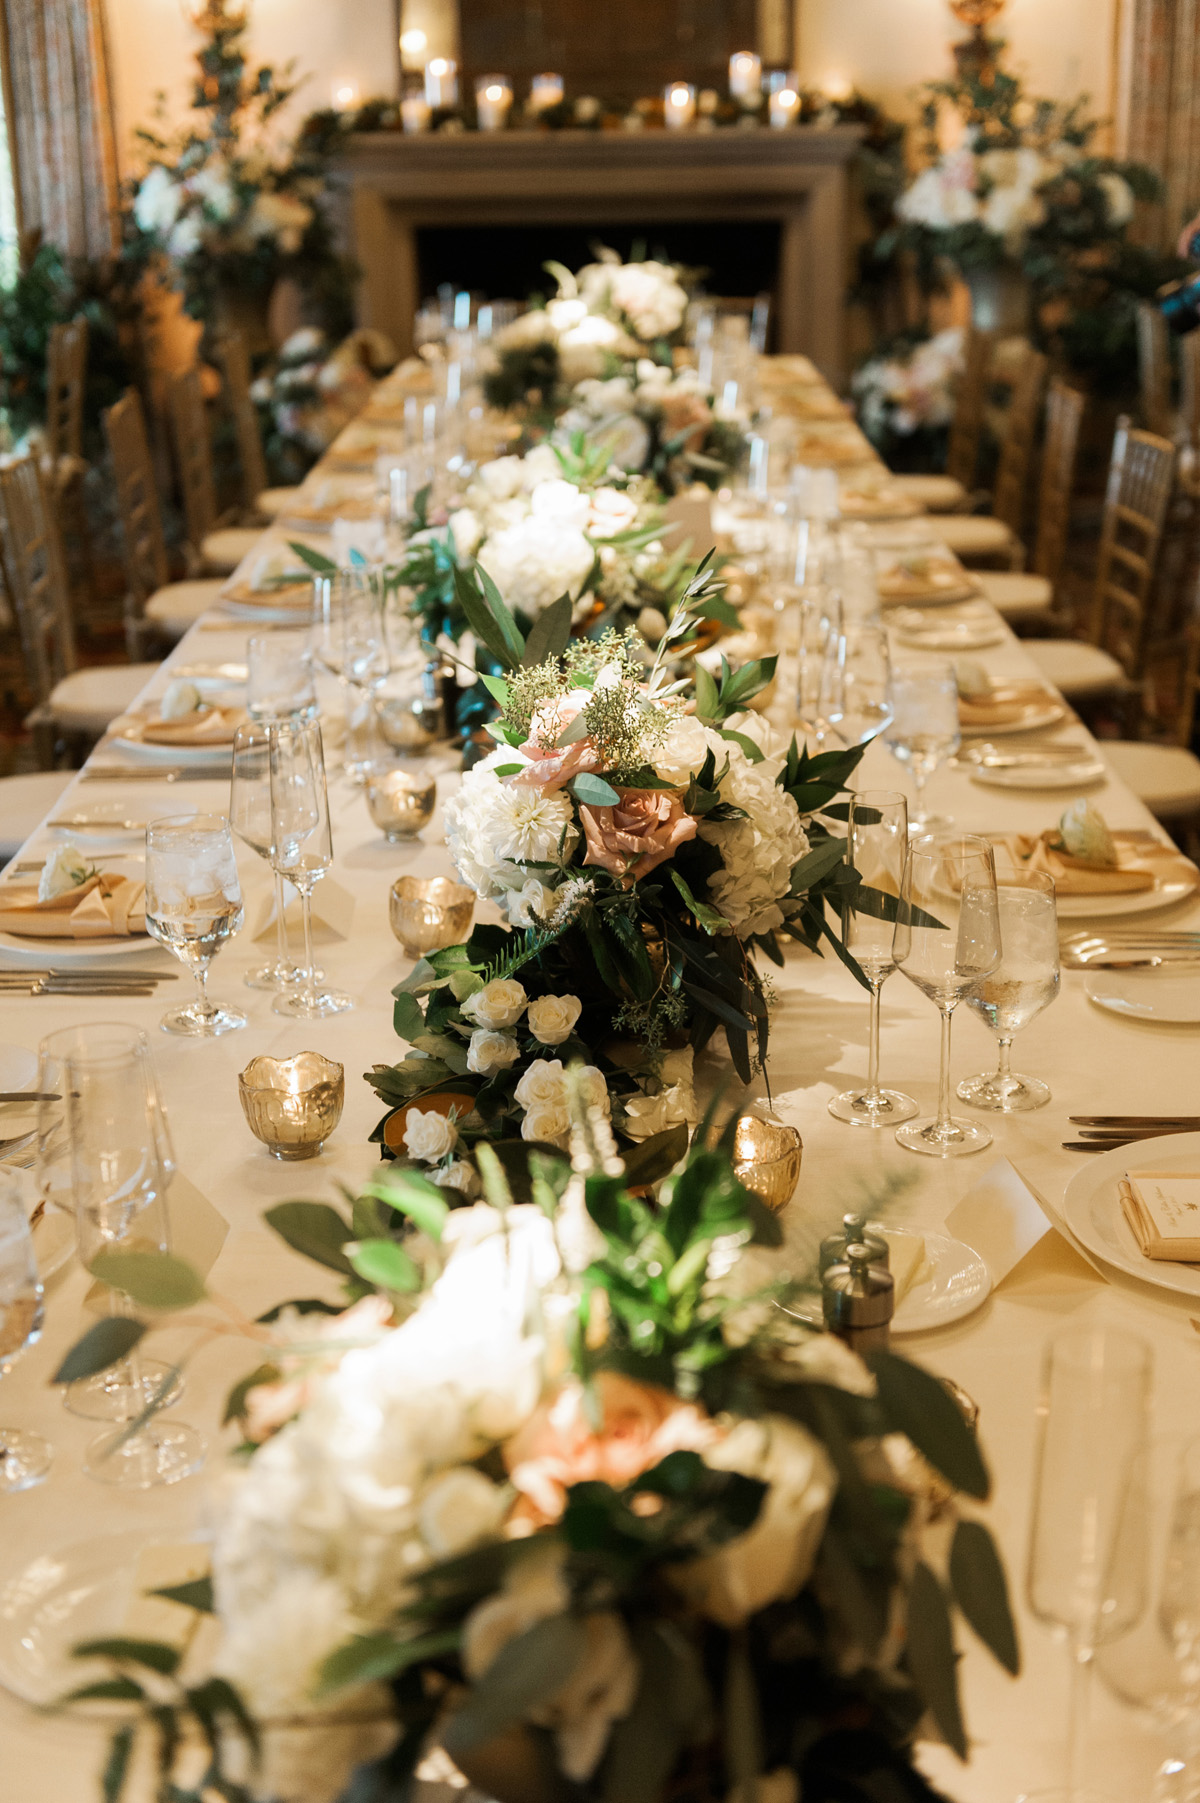 Estate table centerpiece with greenery elizabeth anne designs the wedding blog